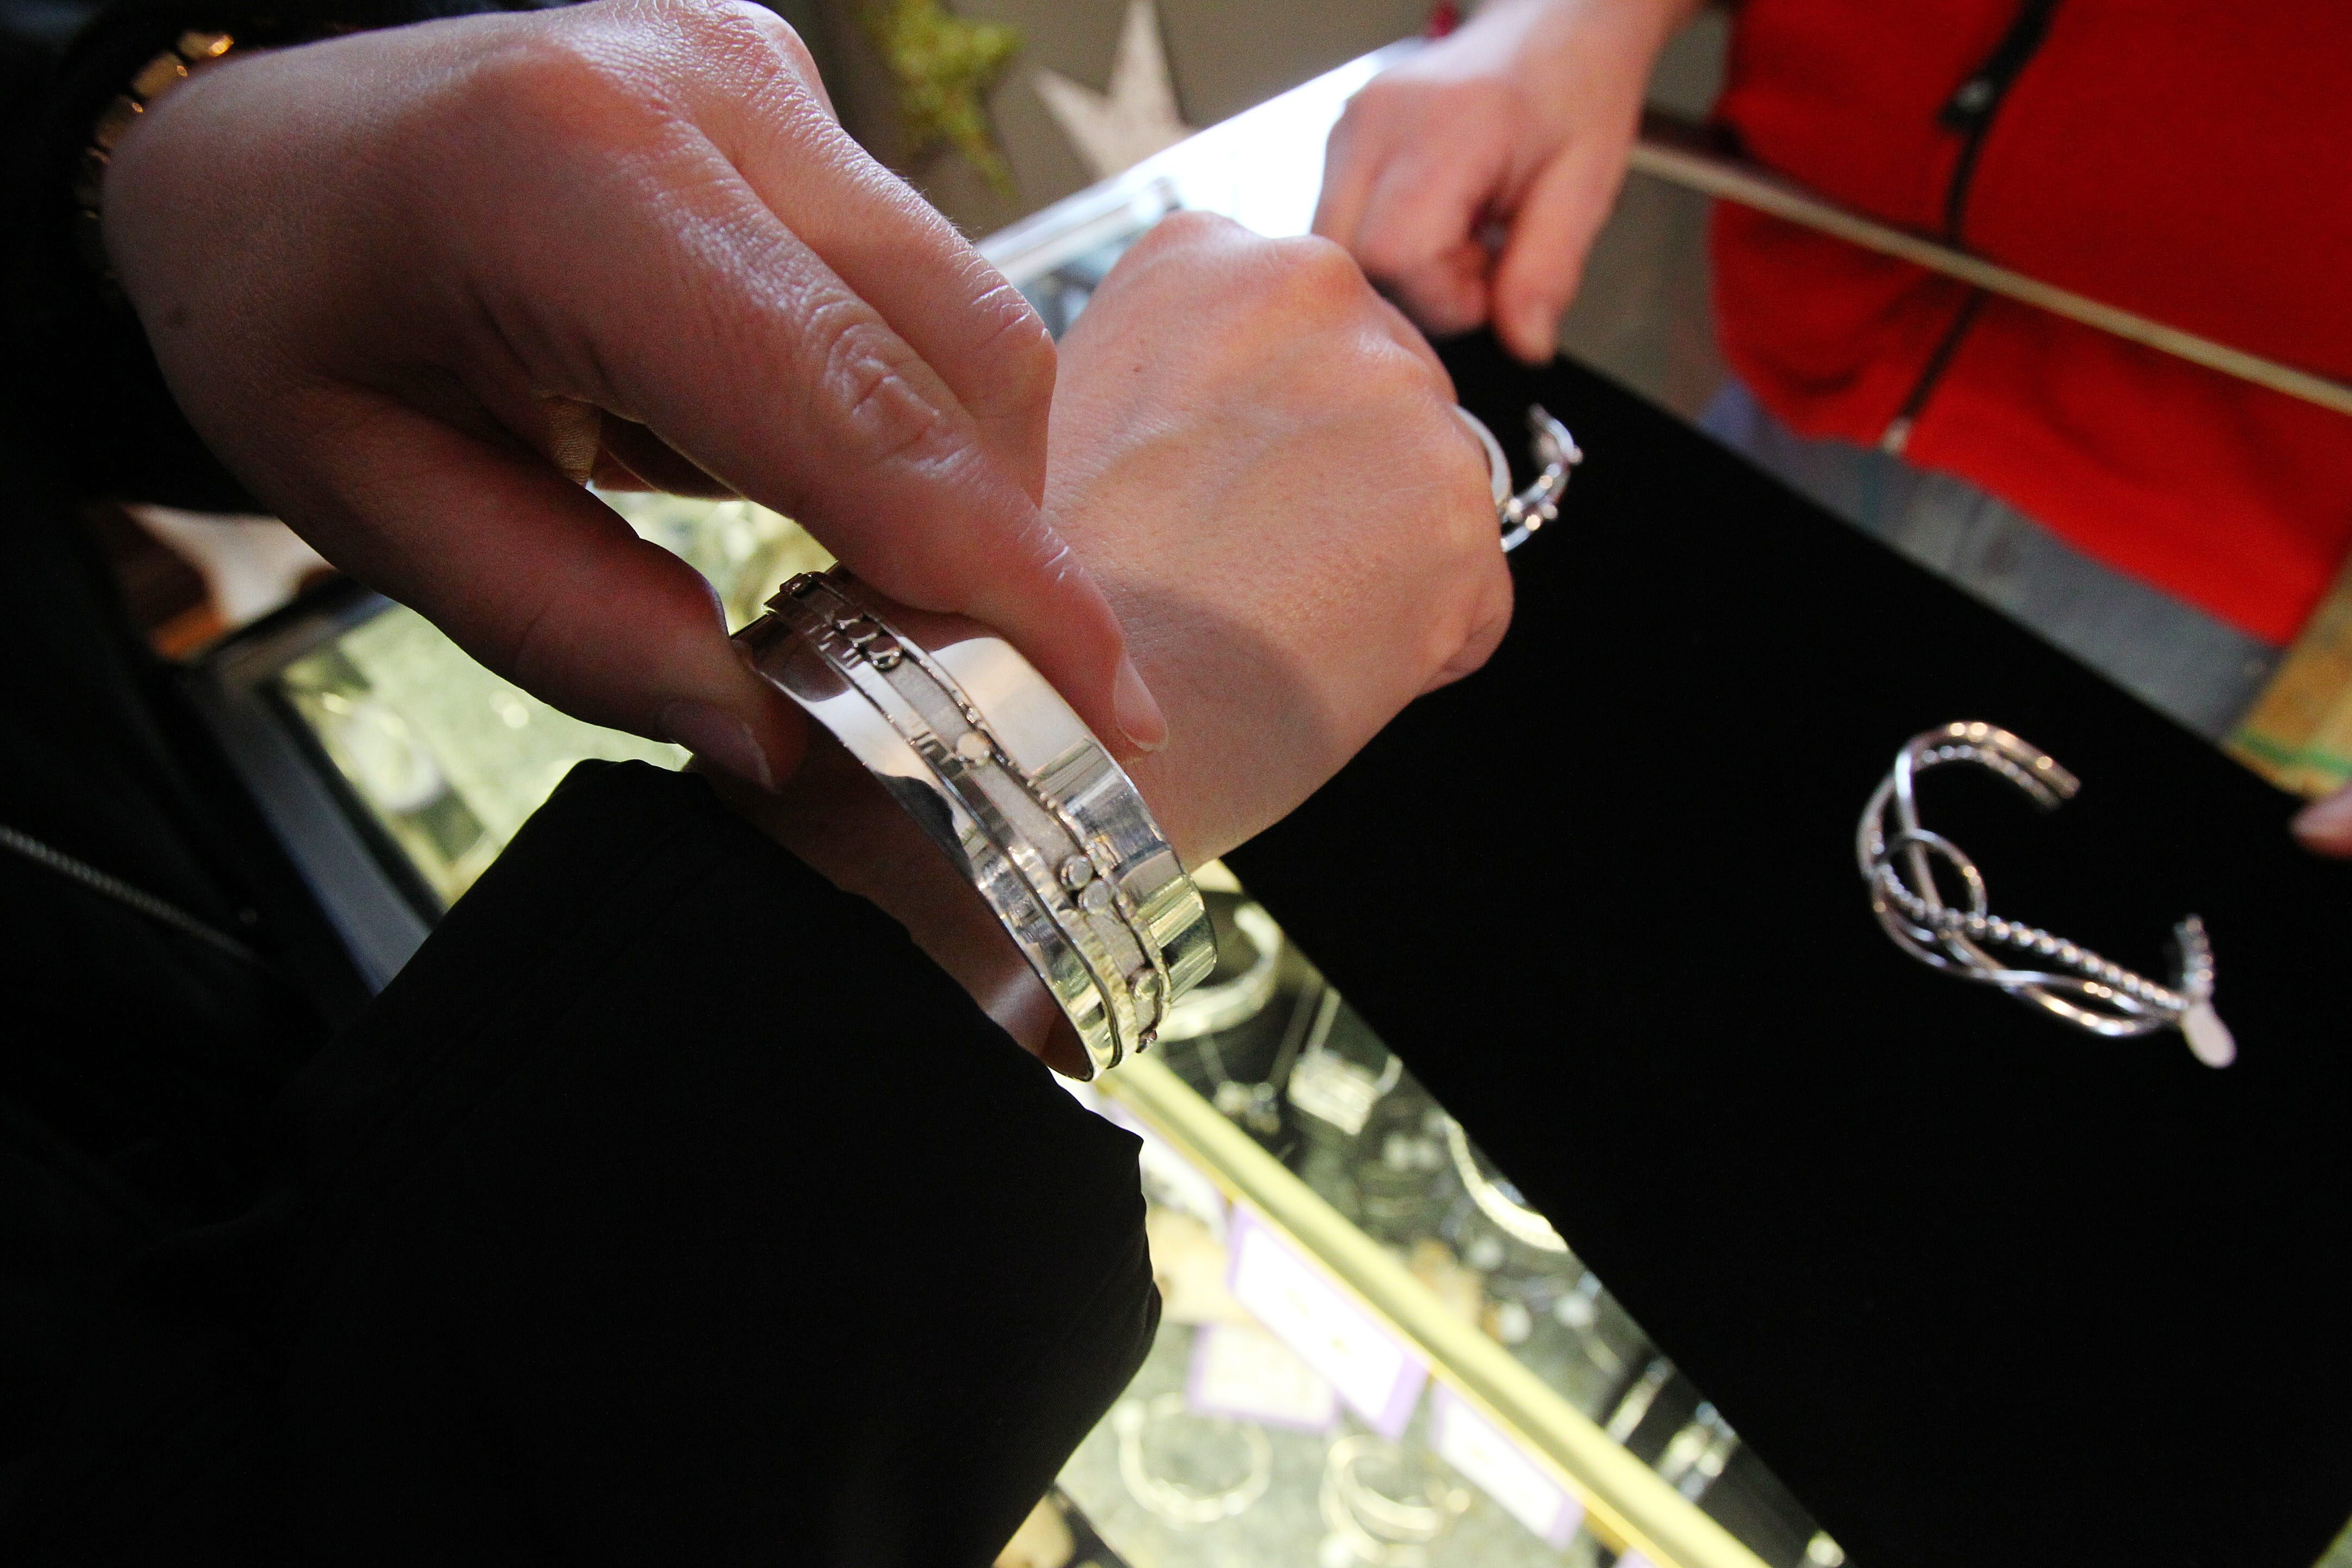 A shopper tries on a silver bracelet at the West End Gallery in East Aurora Friday, December 13, 2013.  (Mark Mulville/Buffalo News)